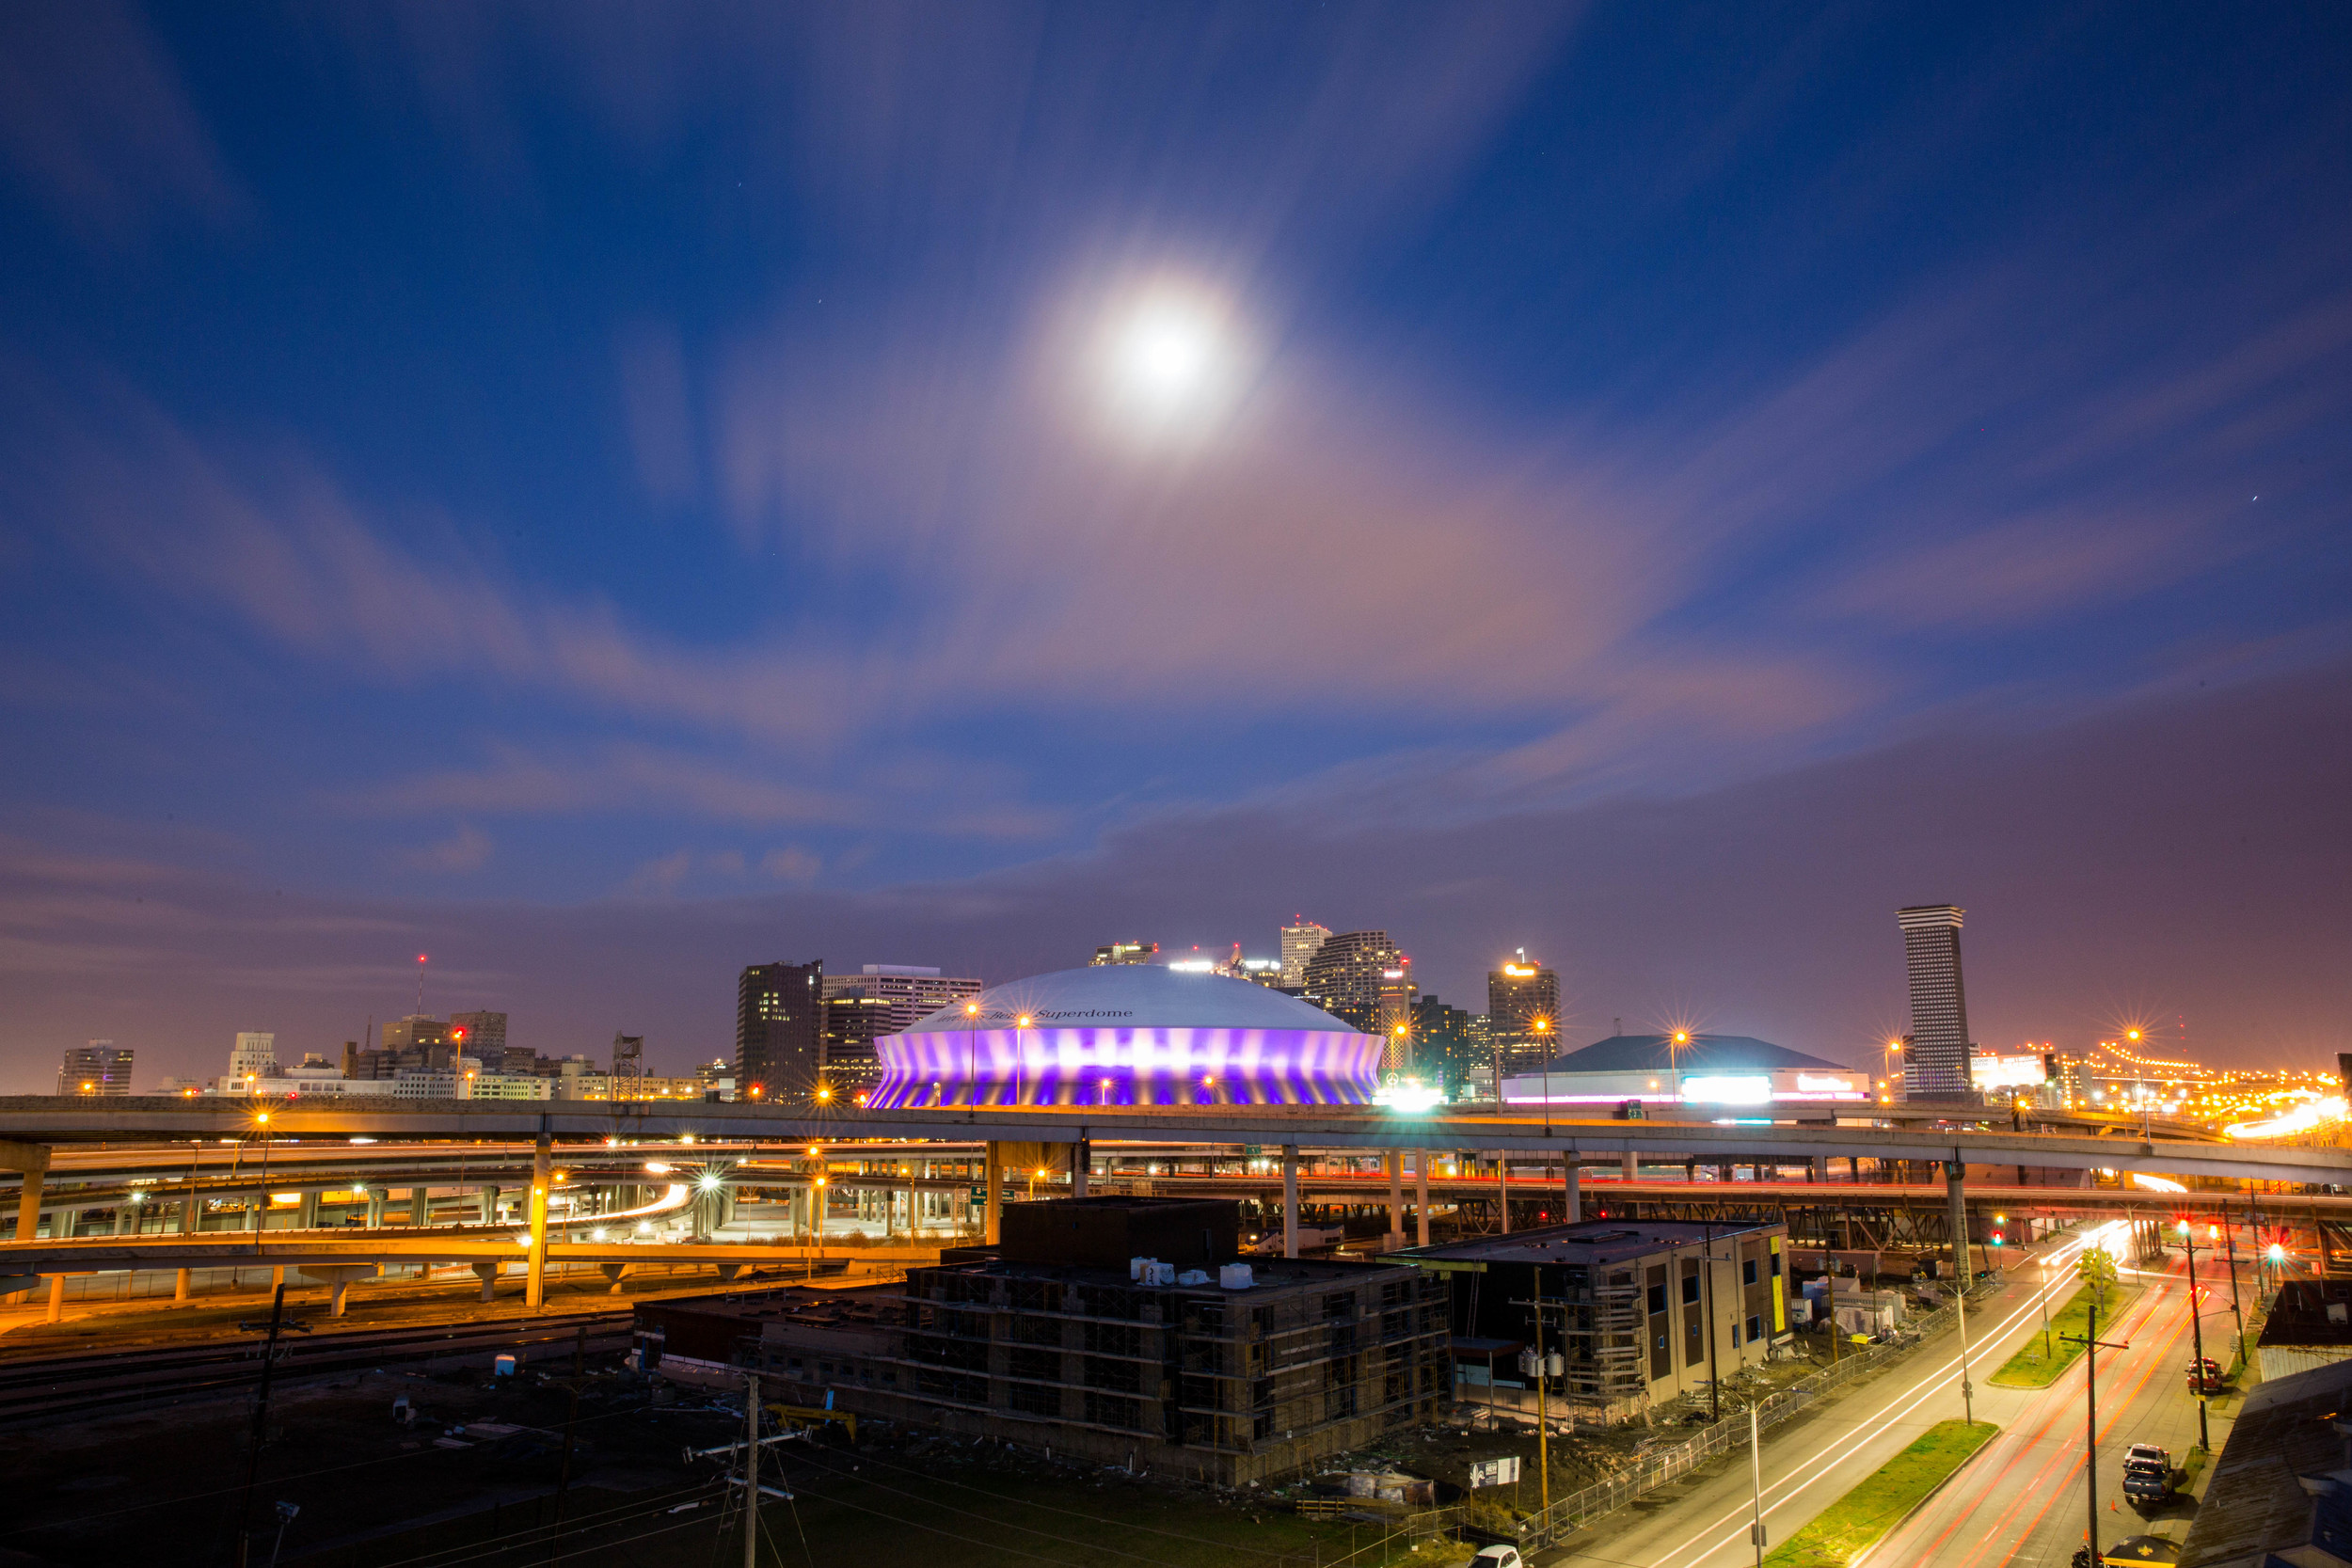 Full Moon over New Orleans